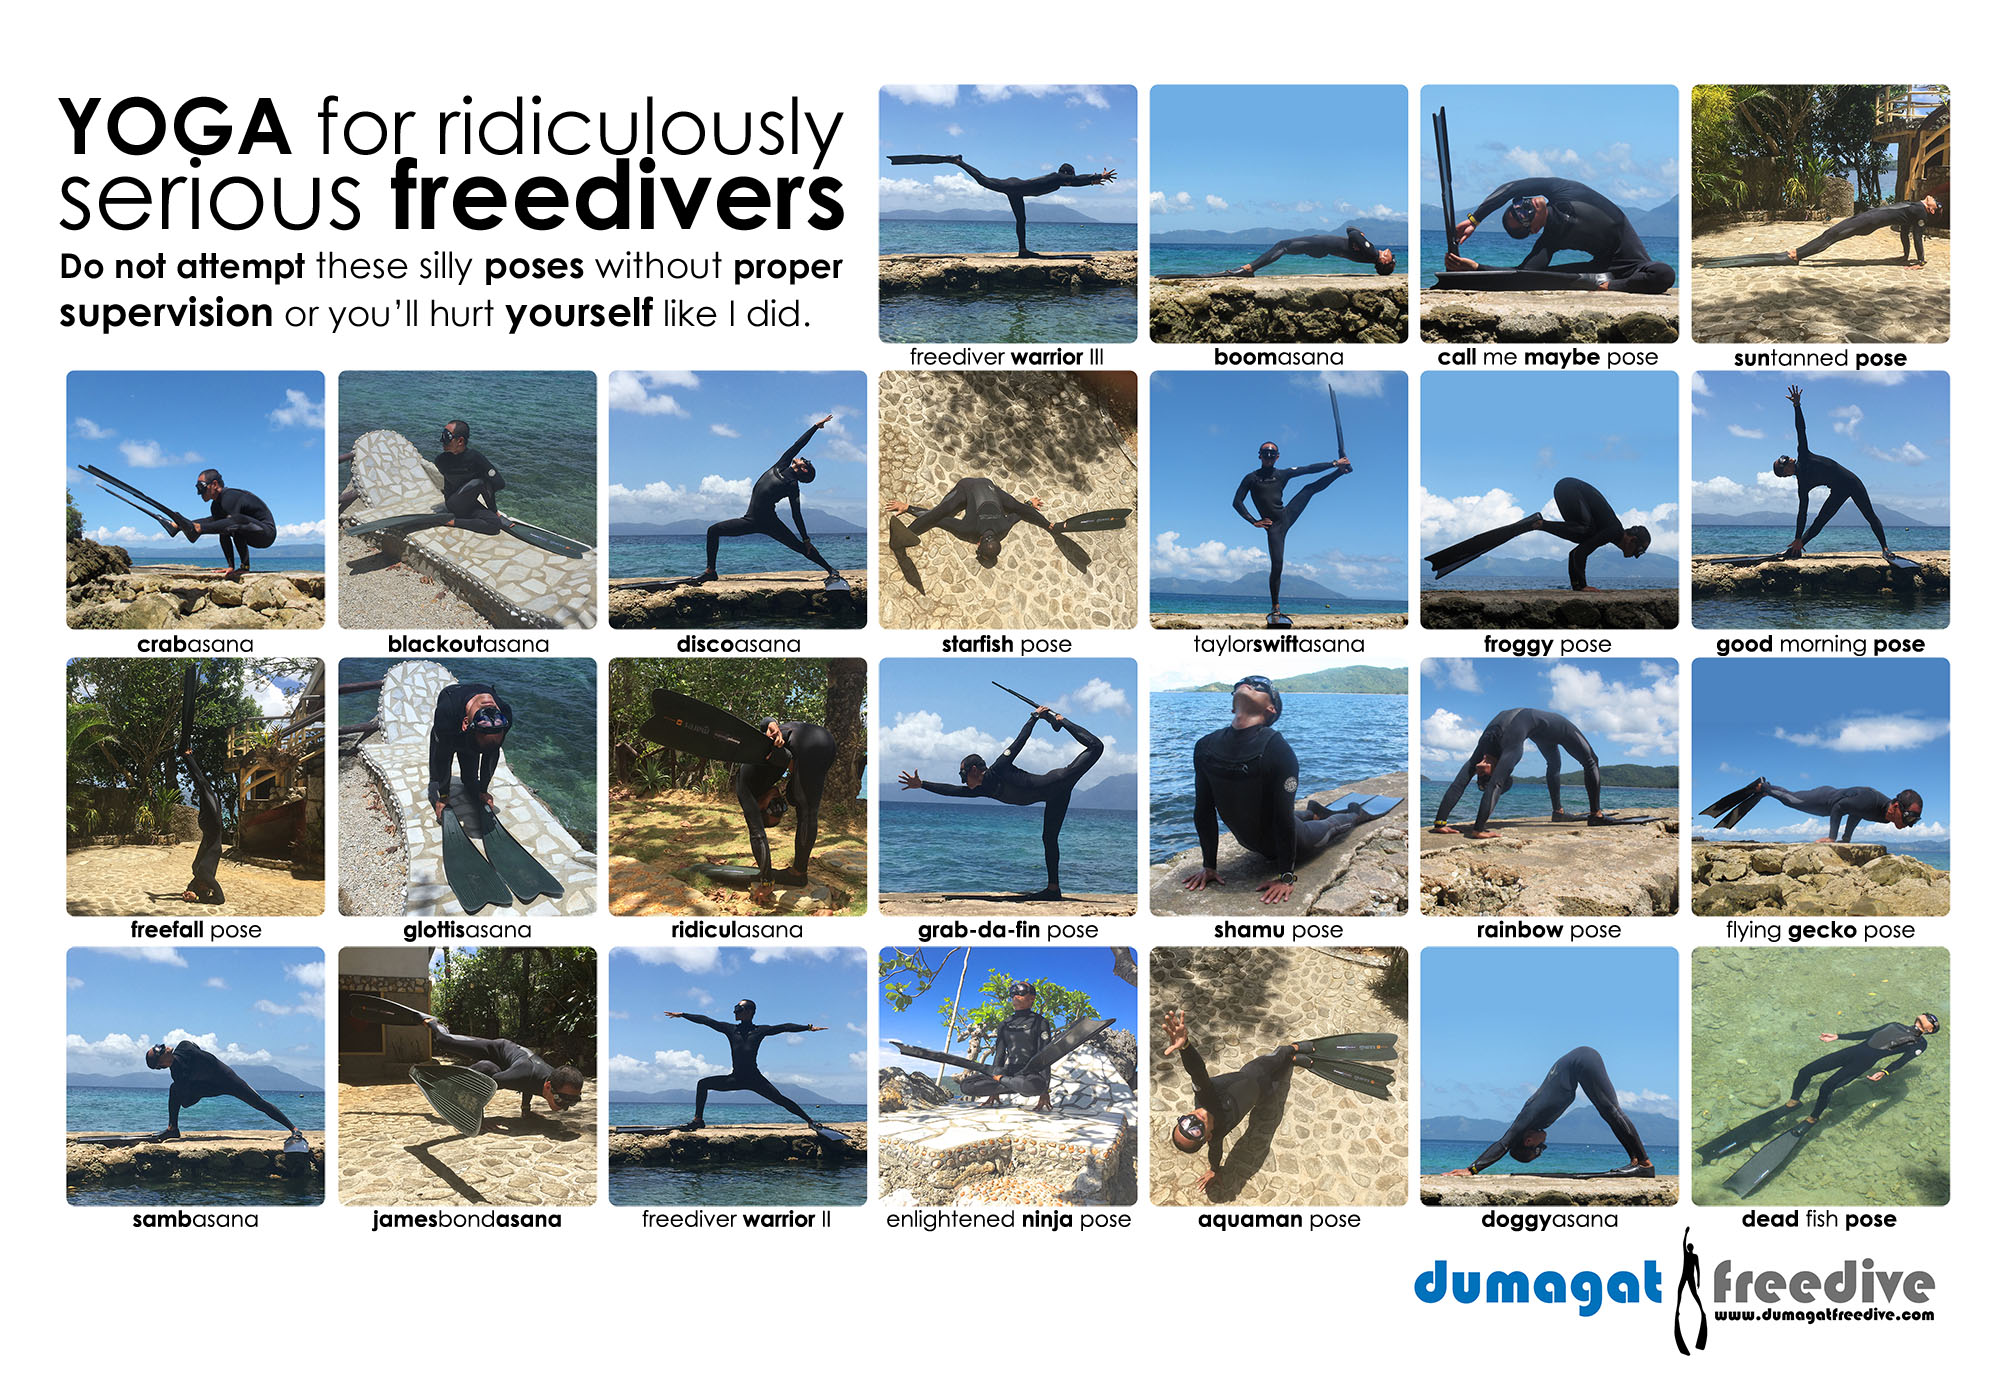 Yoga for ridiculously serious freedivers